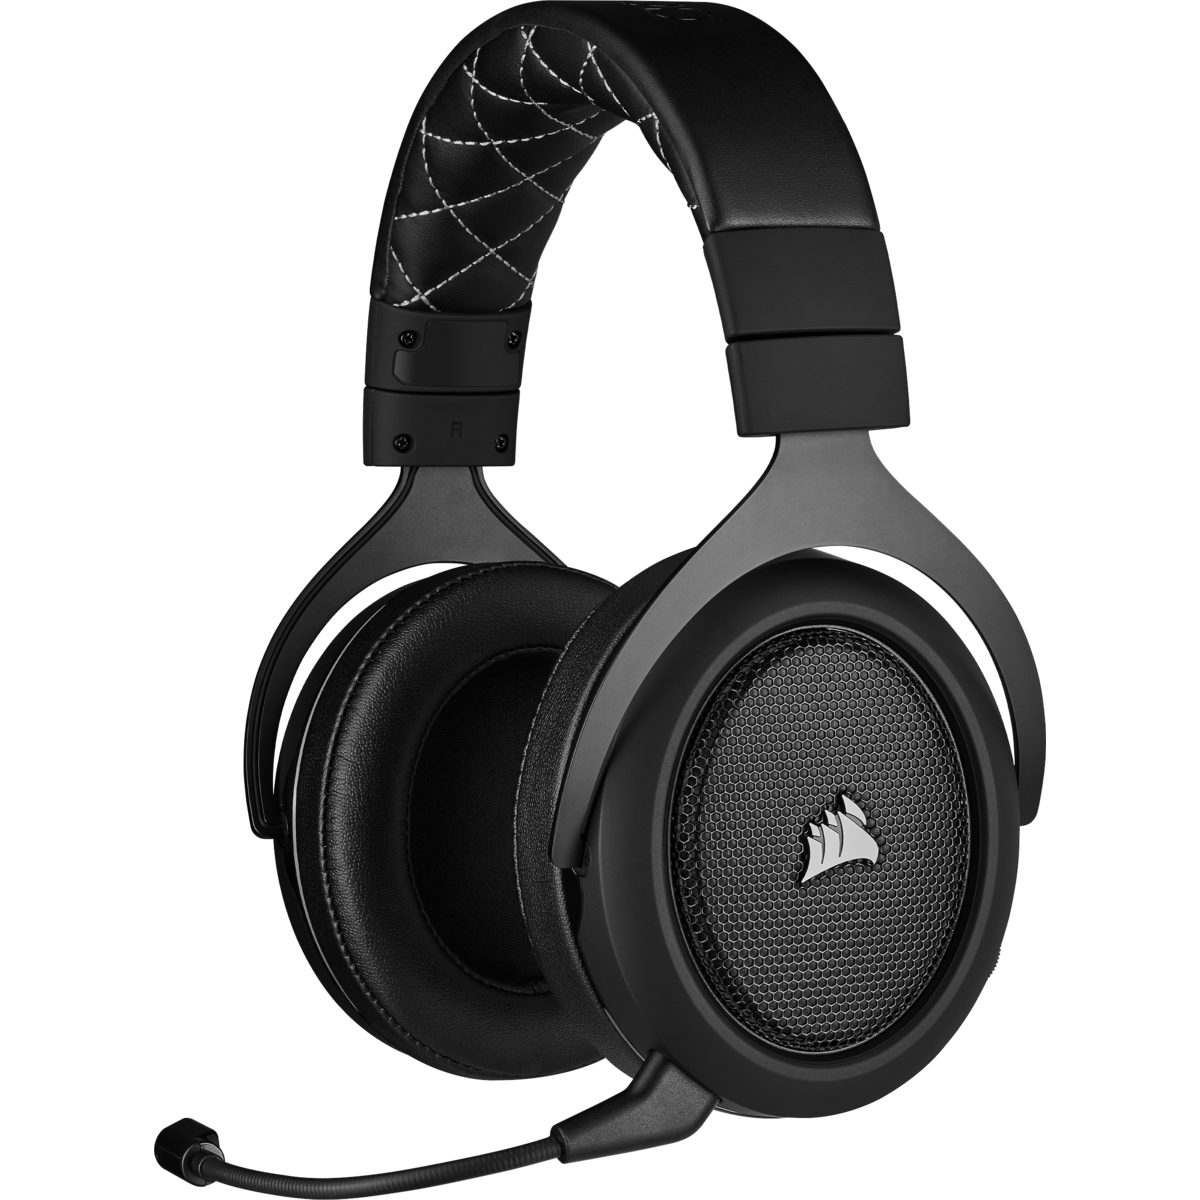 Headset Gamer Corsair HS70 Pro Wireless, Surround 7.1, Carbon, CA-9011211-NA